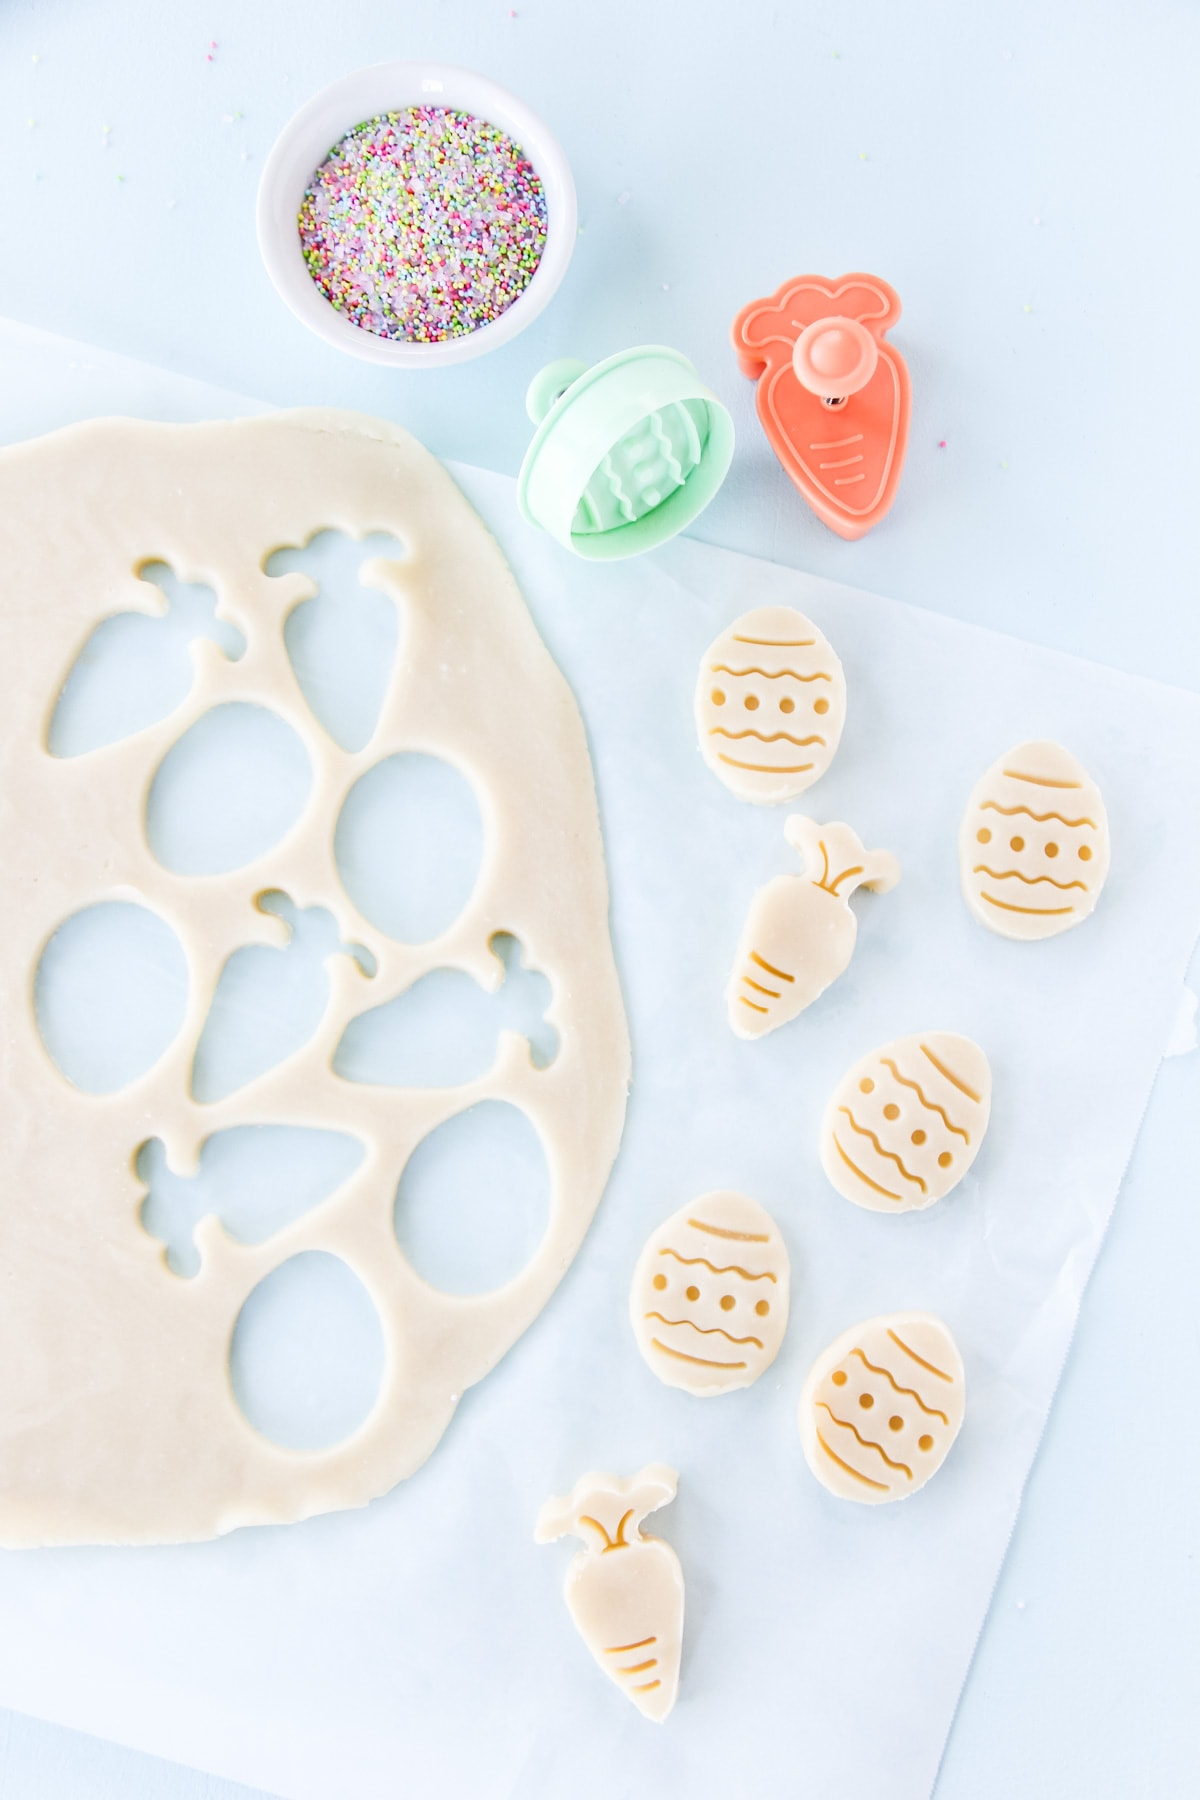 an image of shortbread cookie dough rolled out and cut out with cookie cutters. the shapes are carrots and Easter eggs. next to the cut out cookie dough are two cookie cutters and a bowl of pastel sprinkles